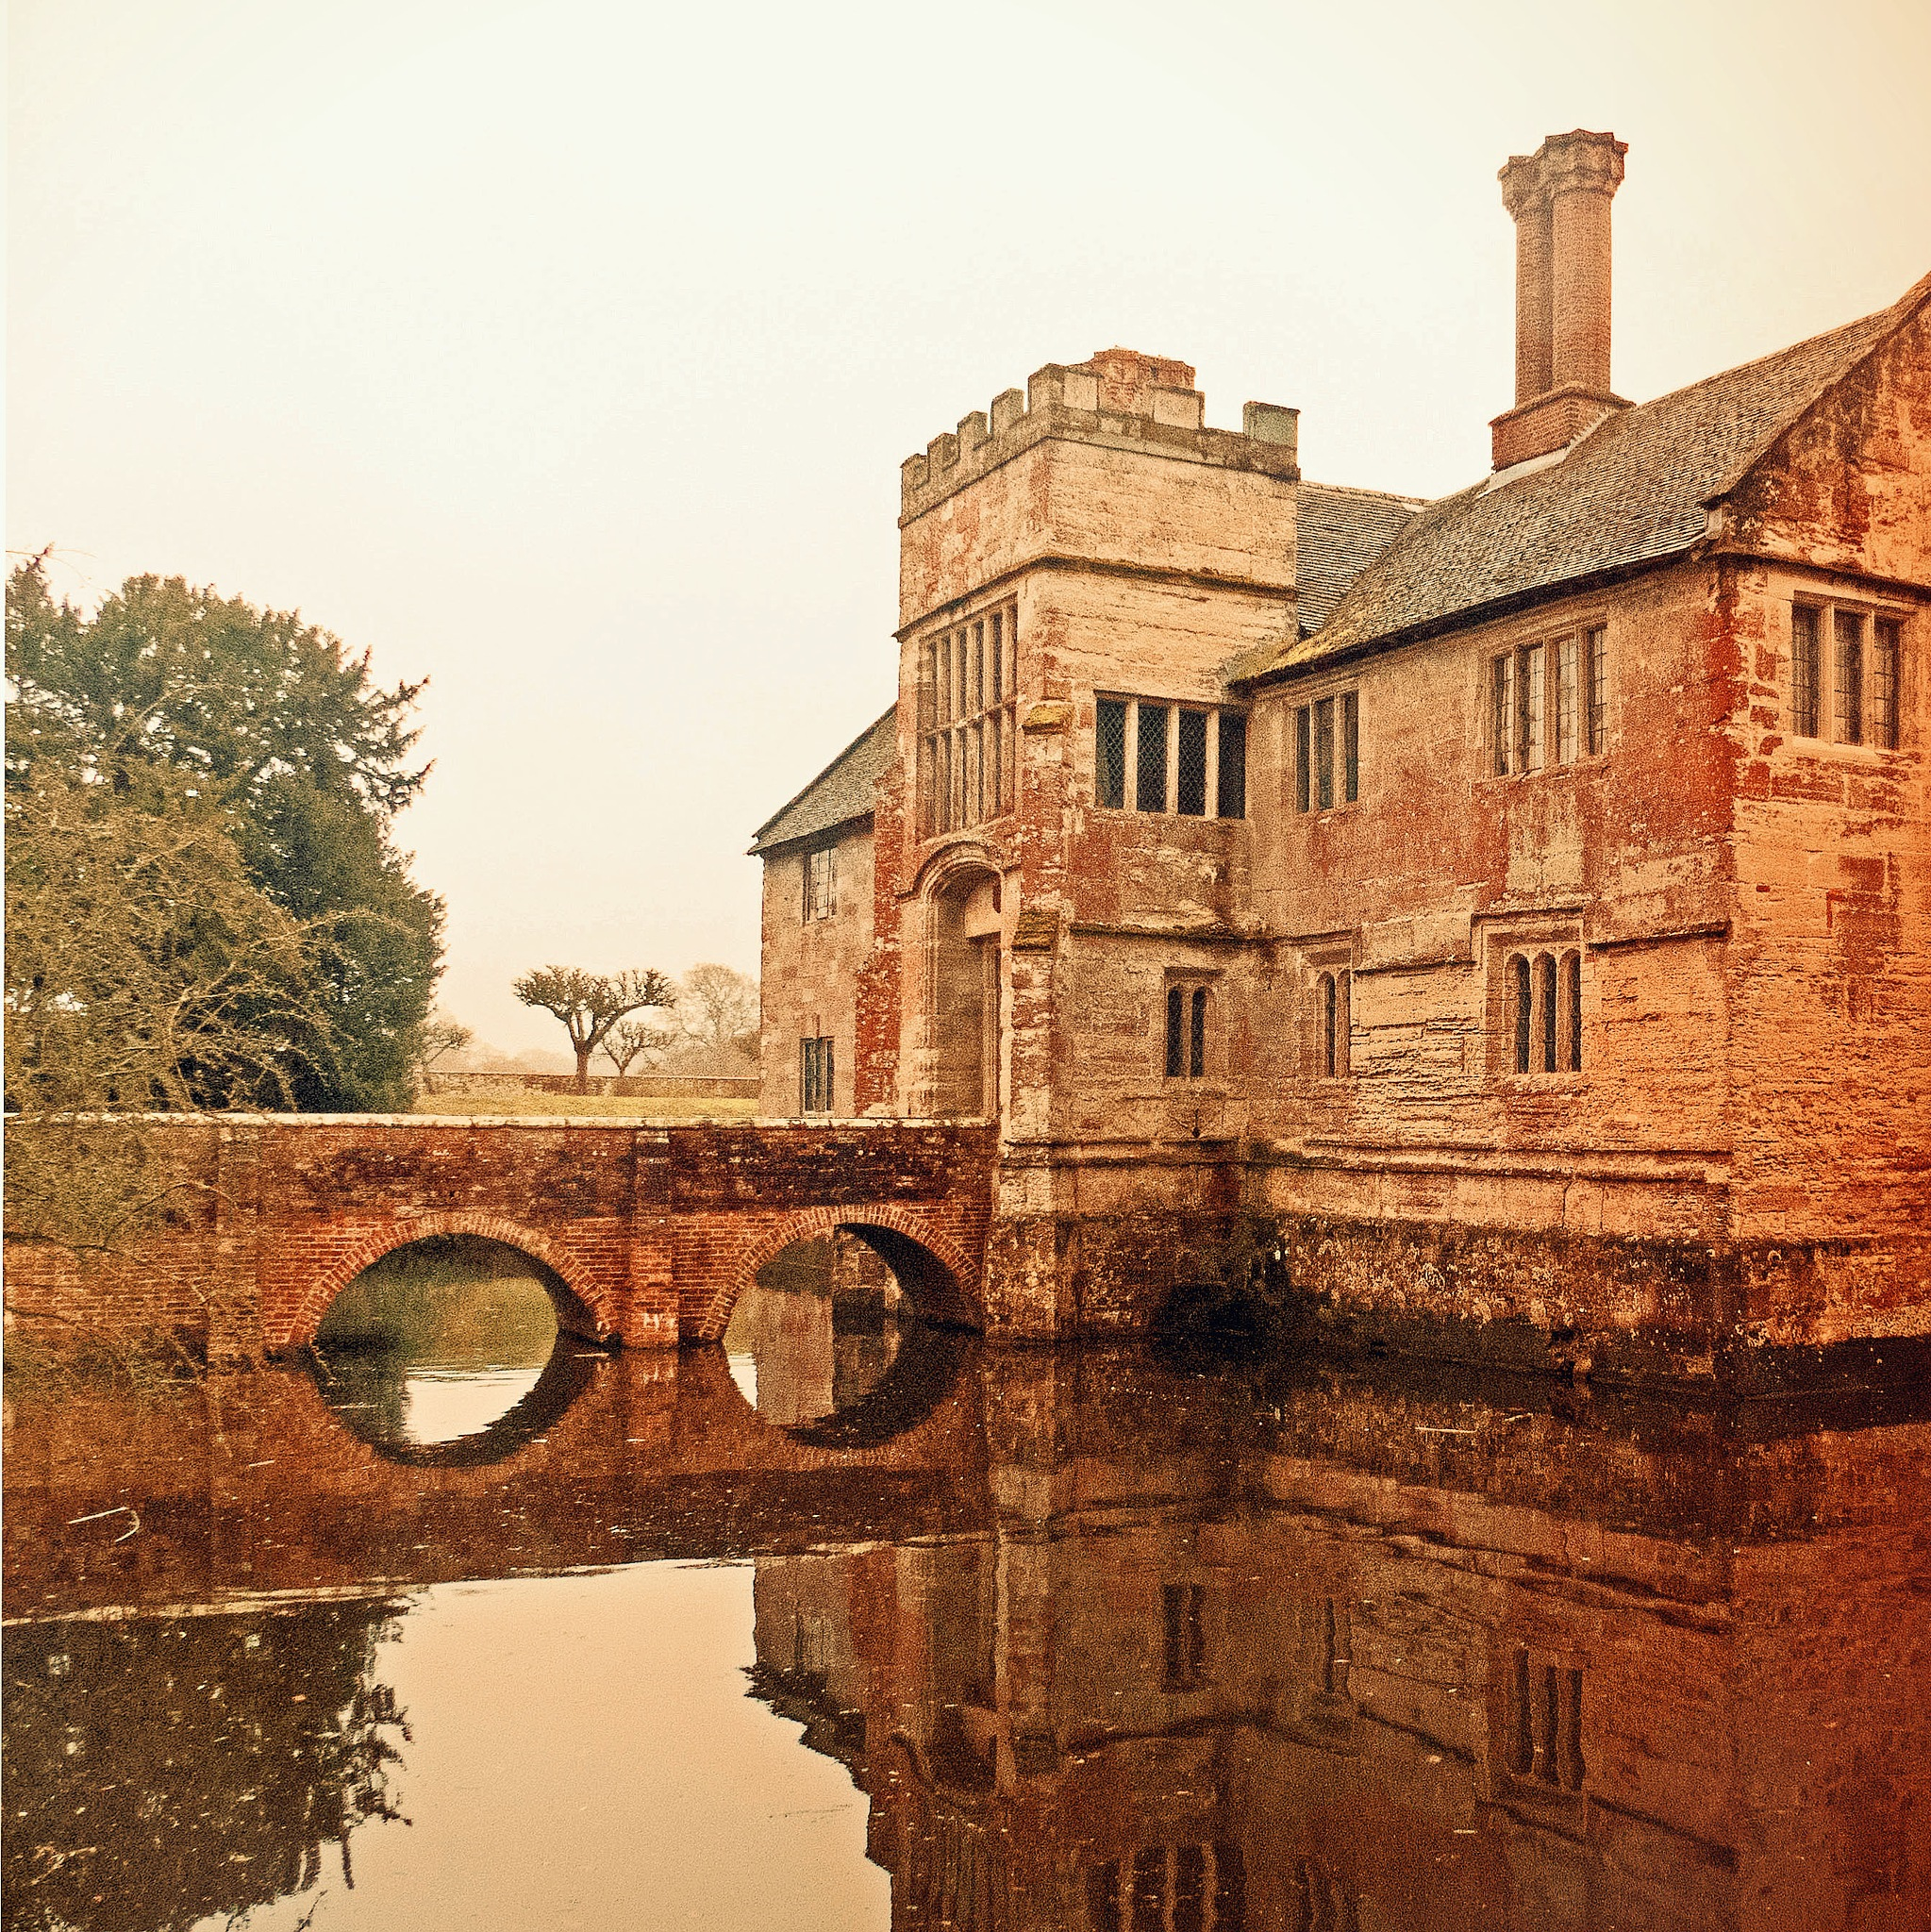 The house, bridge and moat Baddesley Clinton by Terence Quinn